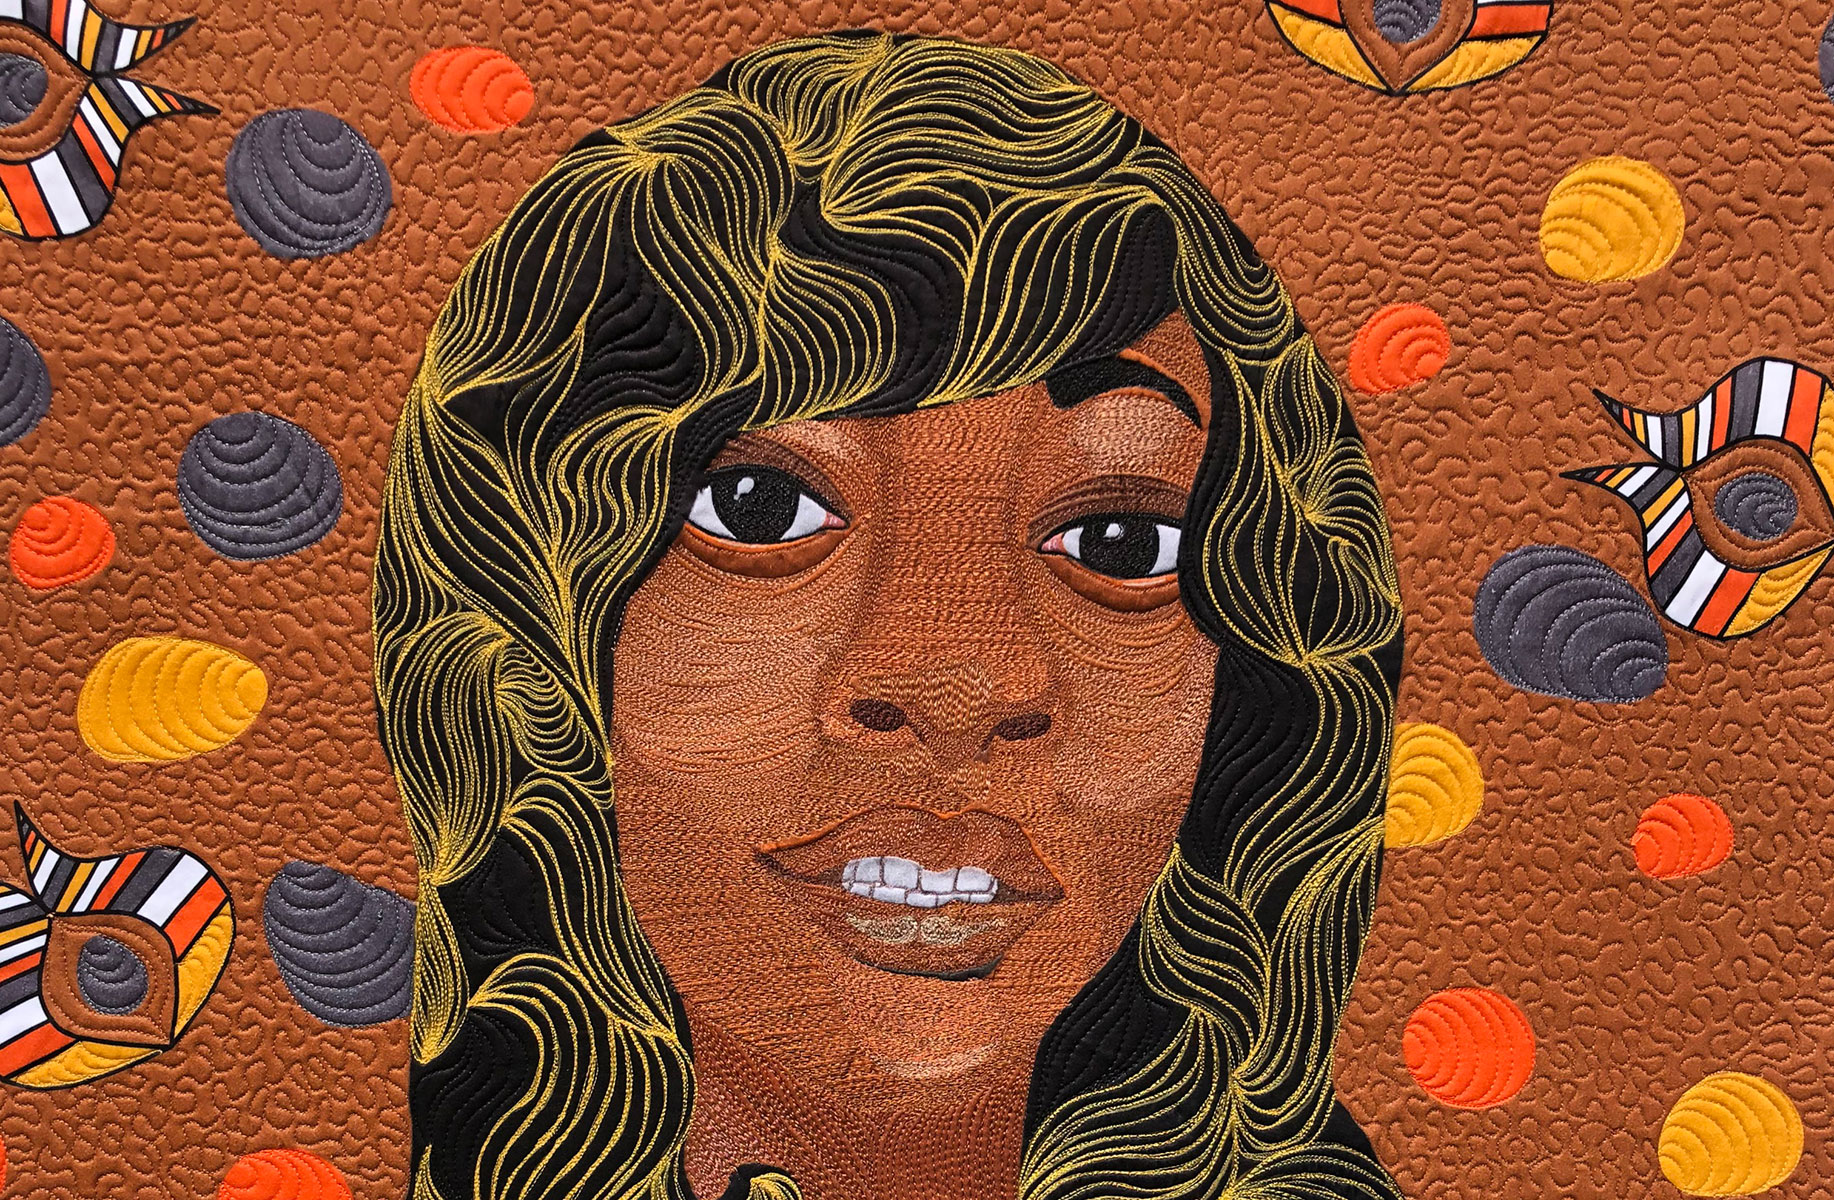 """Charleena"" will be in We Are the Story 